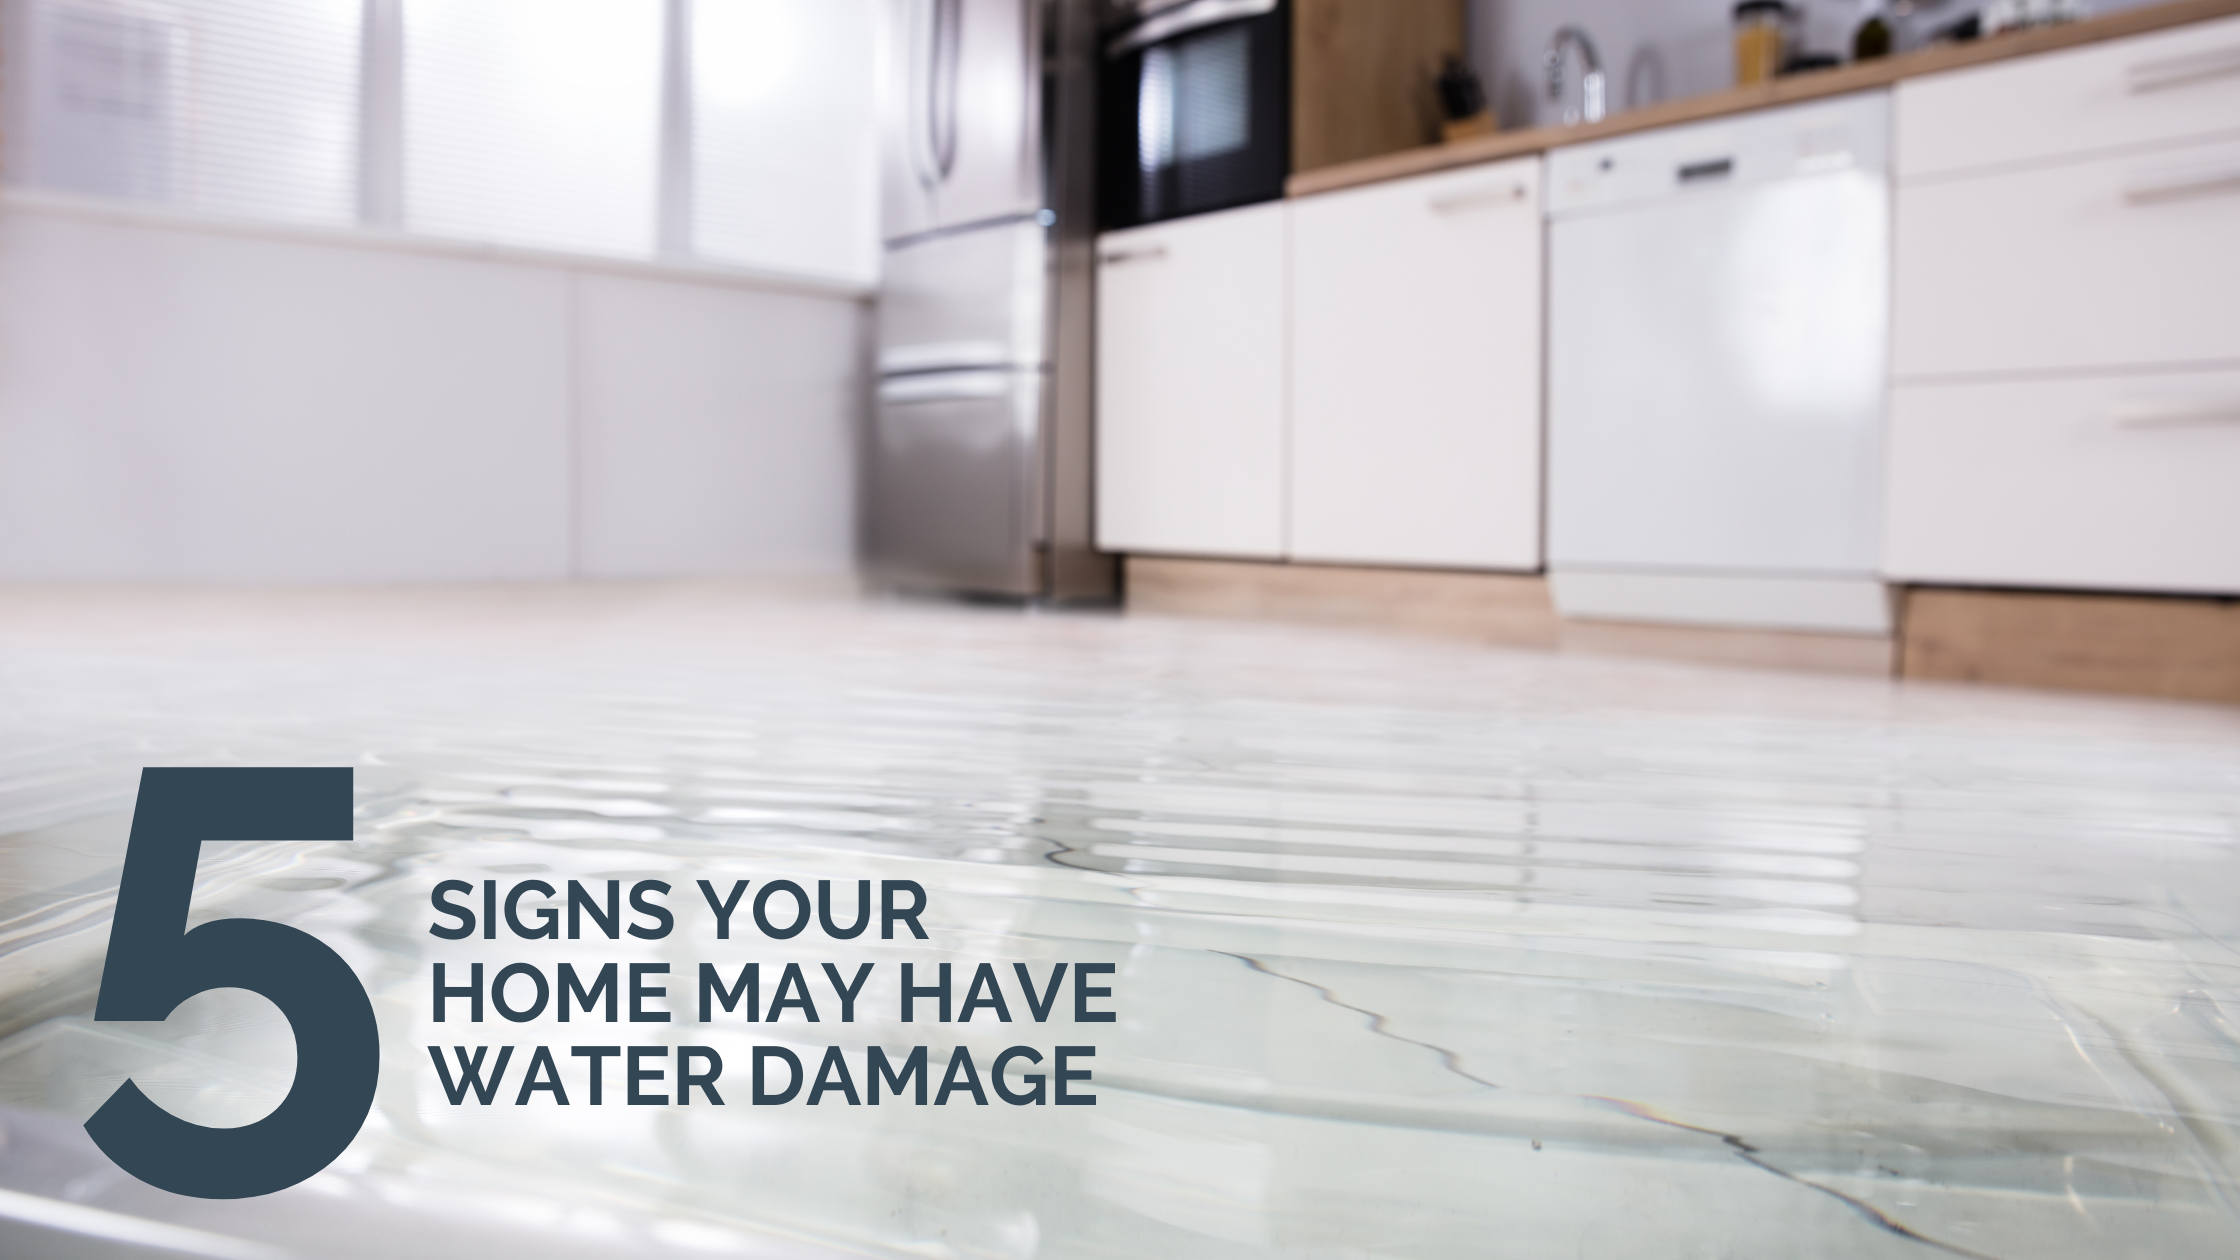 5 Signs Your Home May Have Water Damage